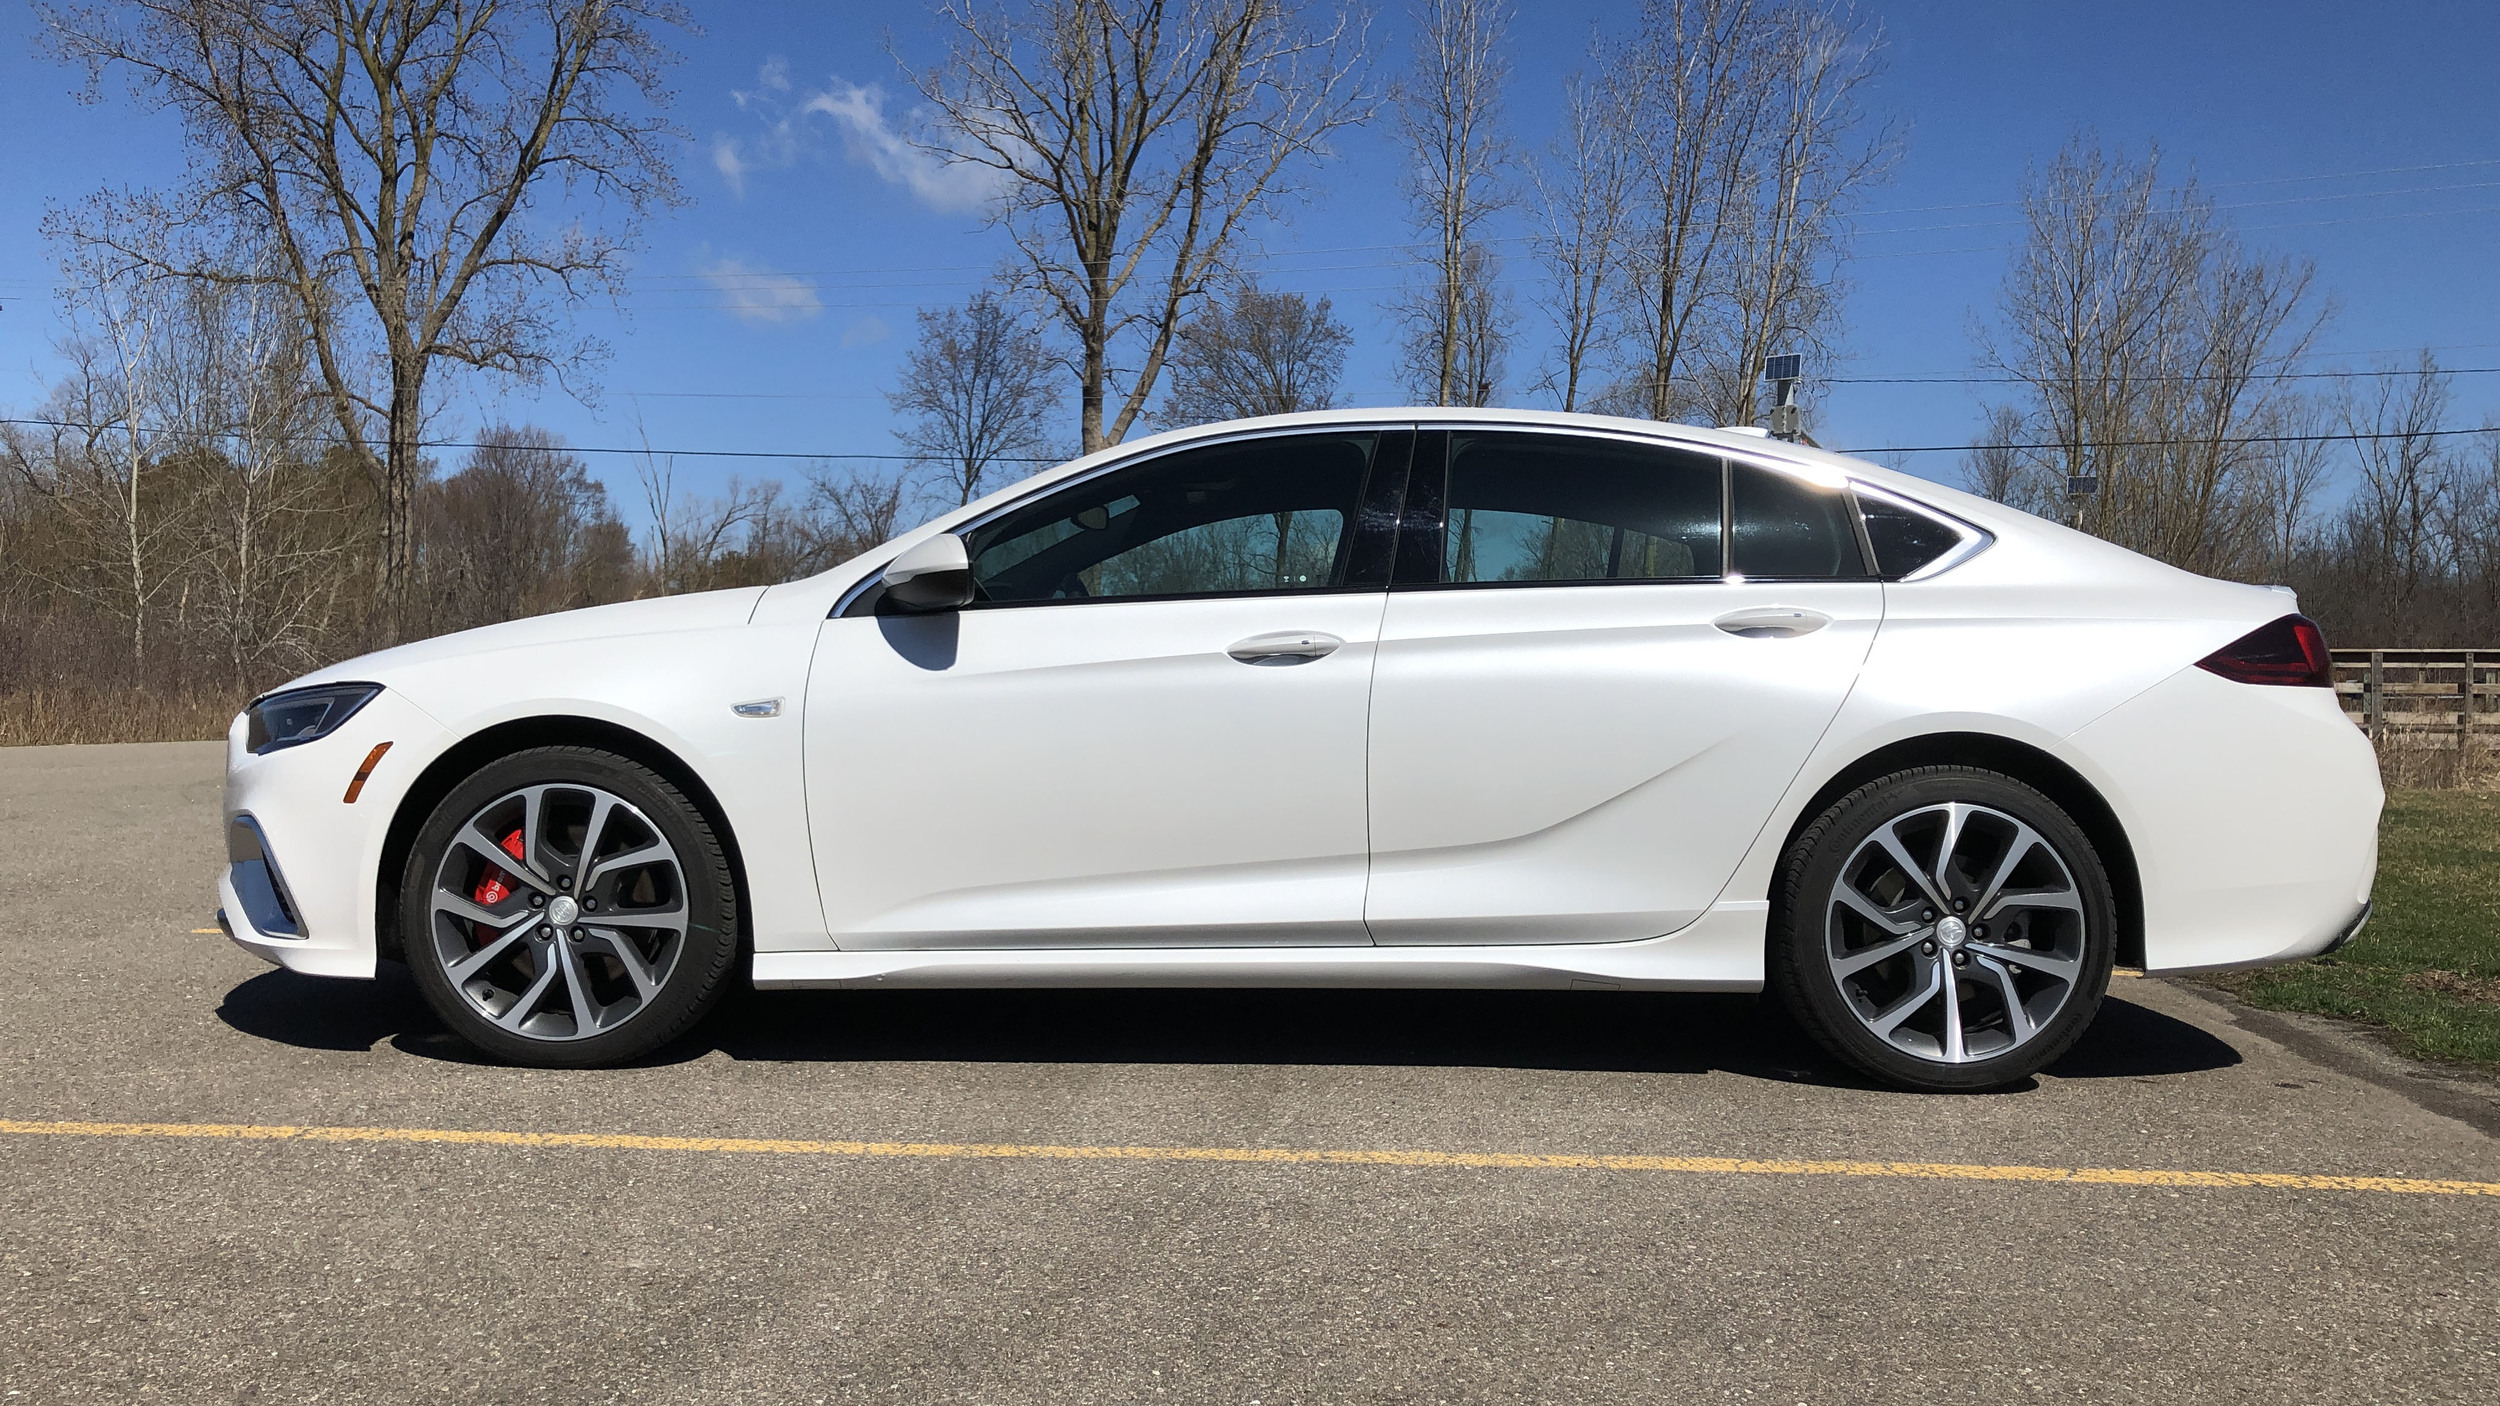 2019 buick regal owners manual